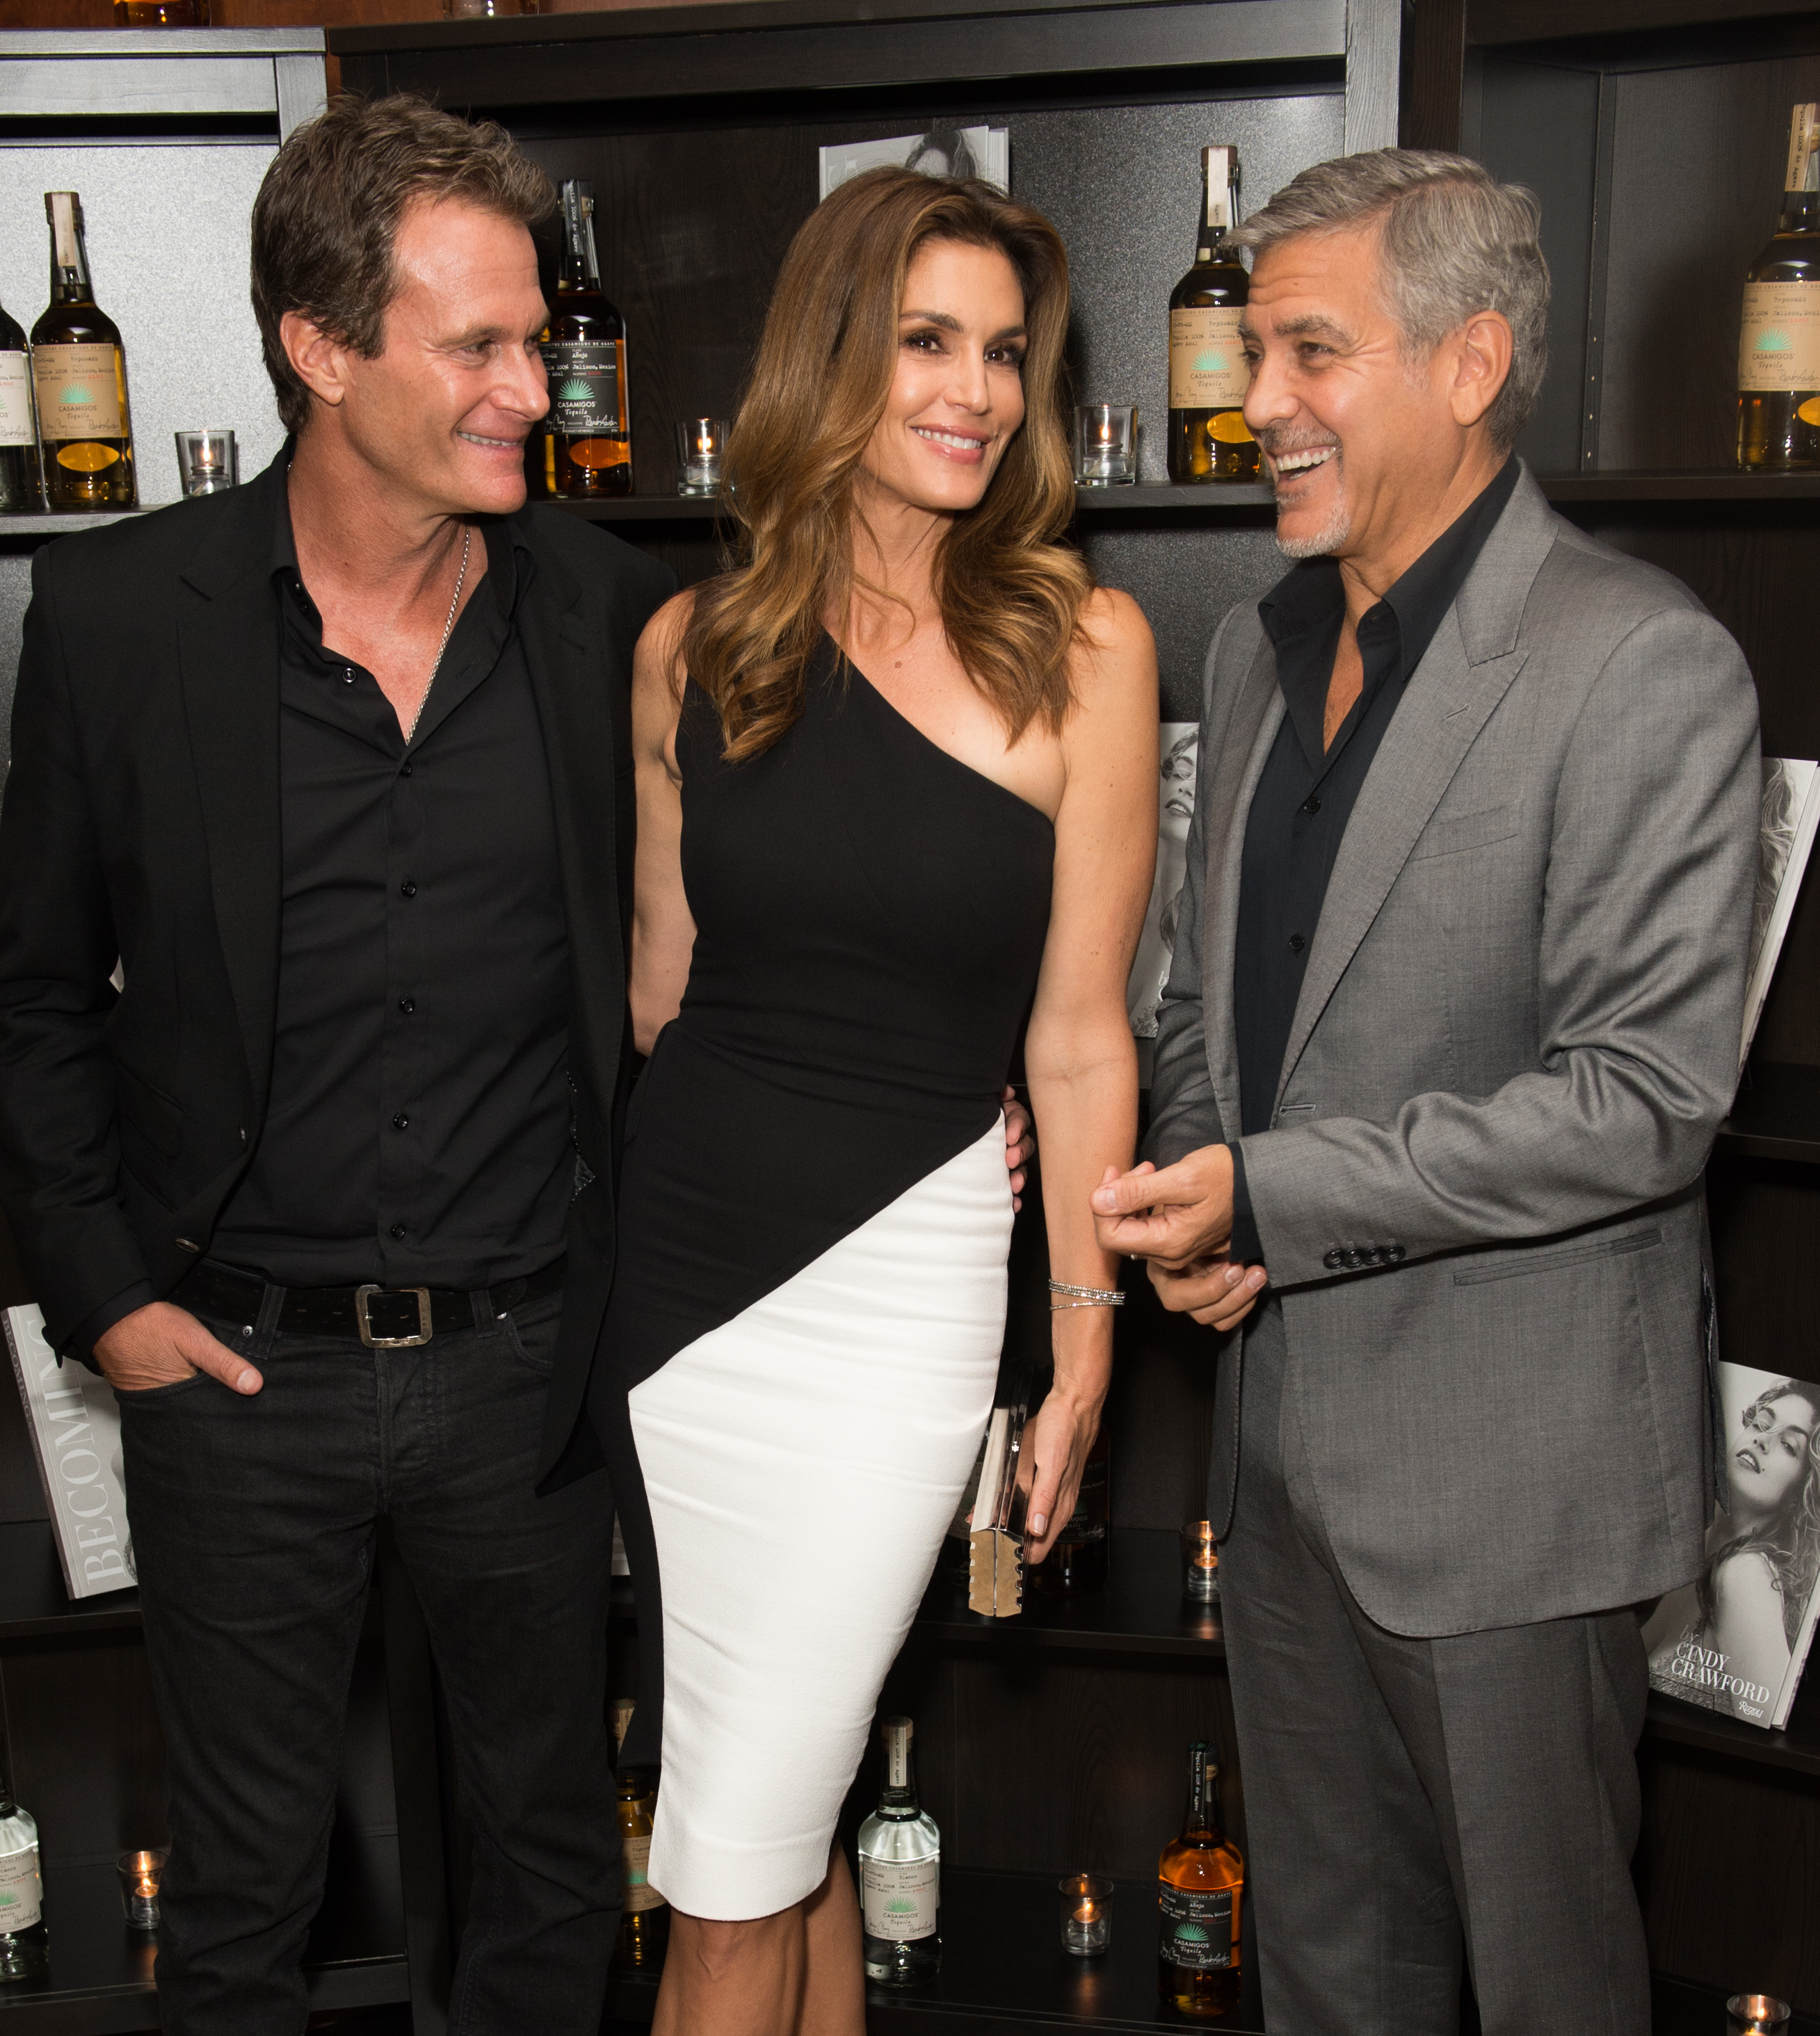 George Clooney, Rande Gerber buy identical condos in the same building